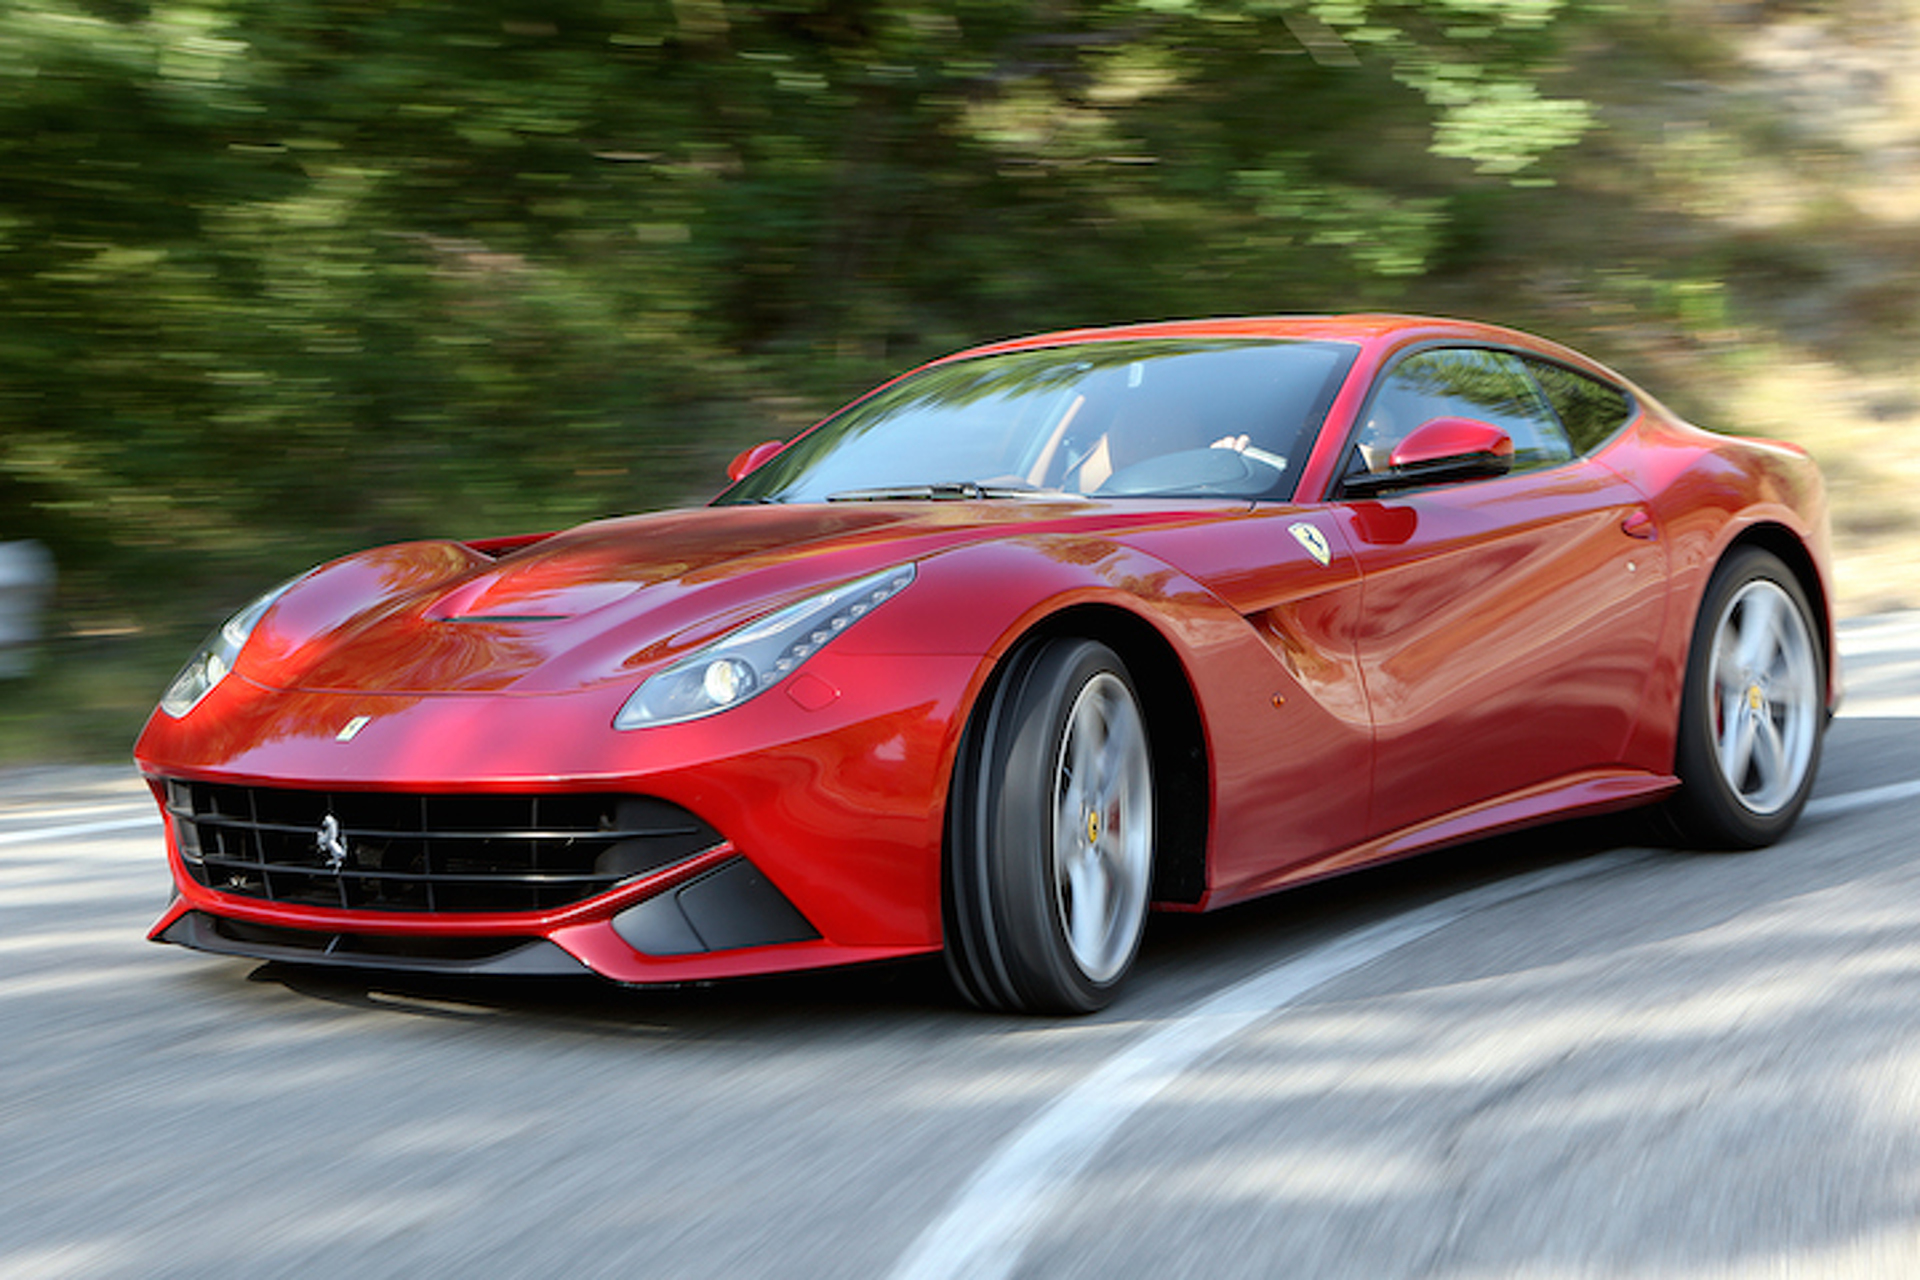 Ferrari is Building a Special Car for the U.S., Ironically